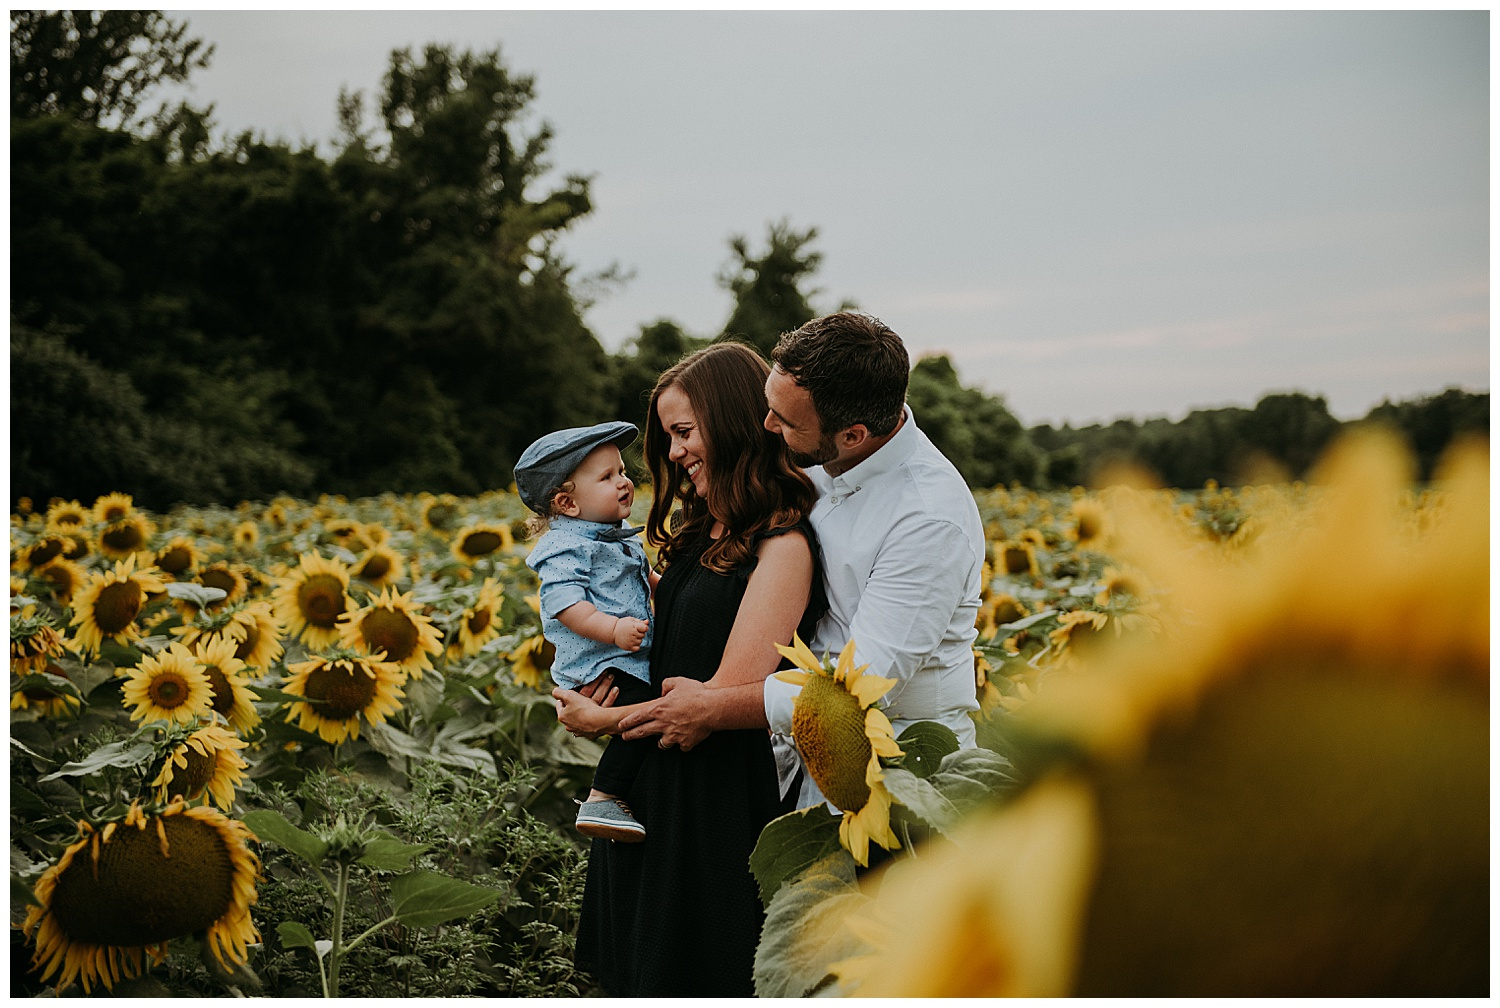 Holly McMurter Photographs | Prince Edward County Sunflower Family Session_0005.jpg